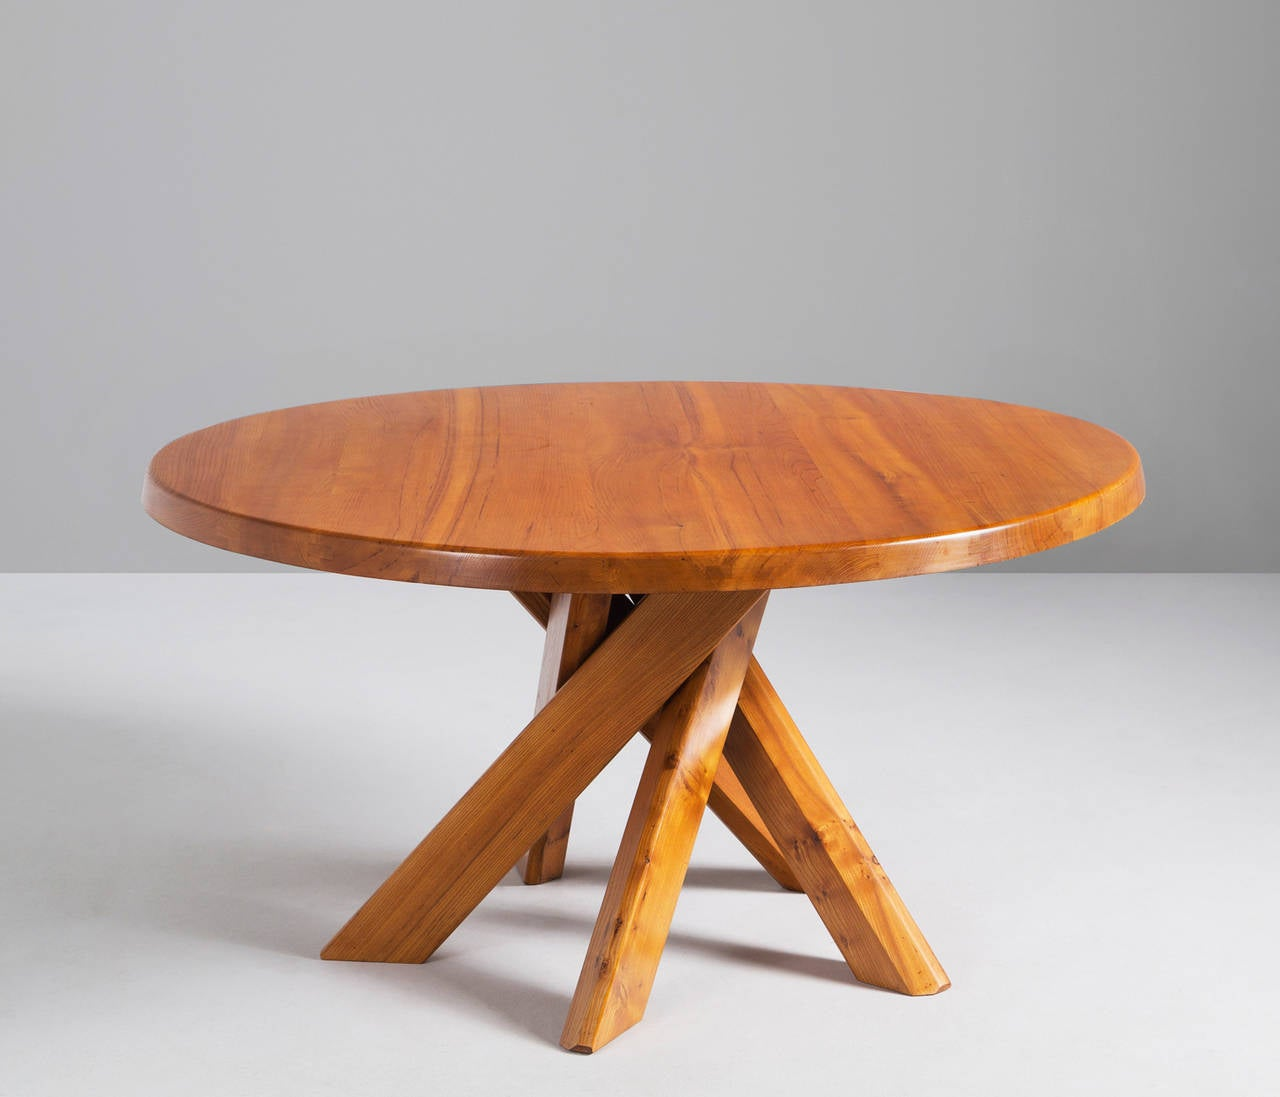 Well Made Round Pedestal Table With Five Crossed Legs By